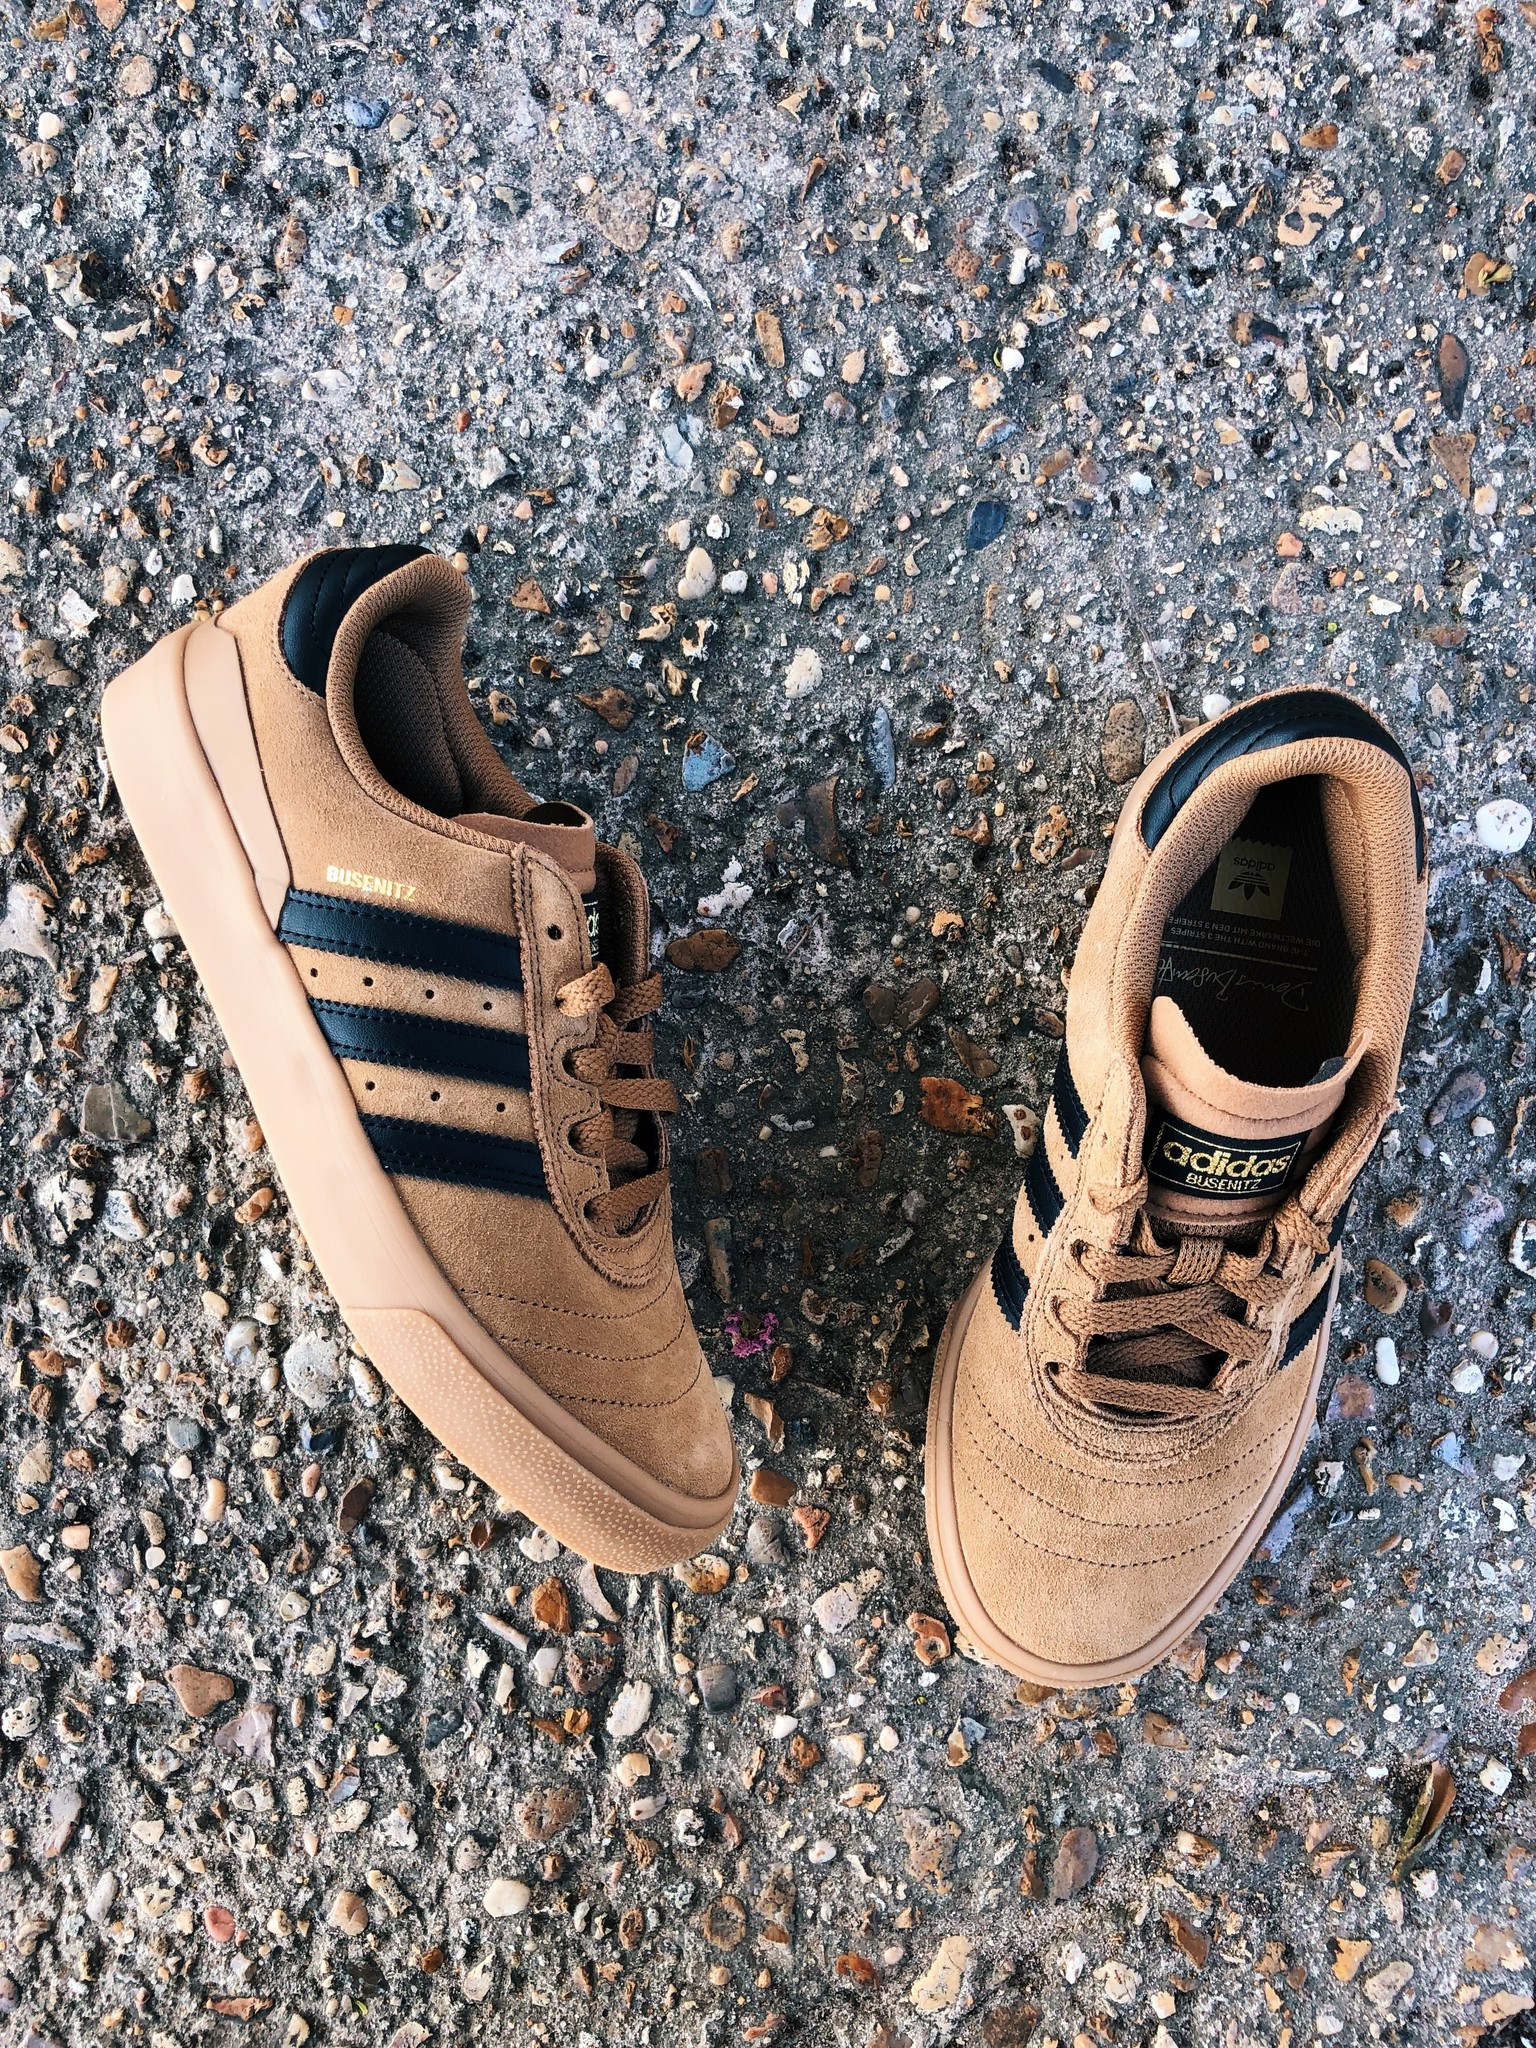 adidas Busenitz Vulc Tan and Gum